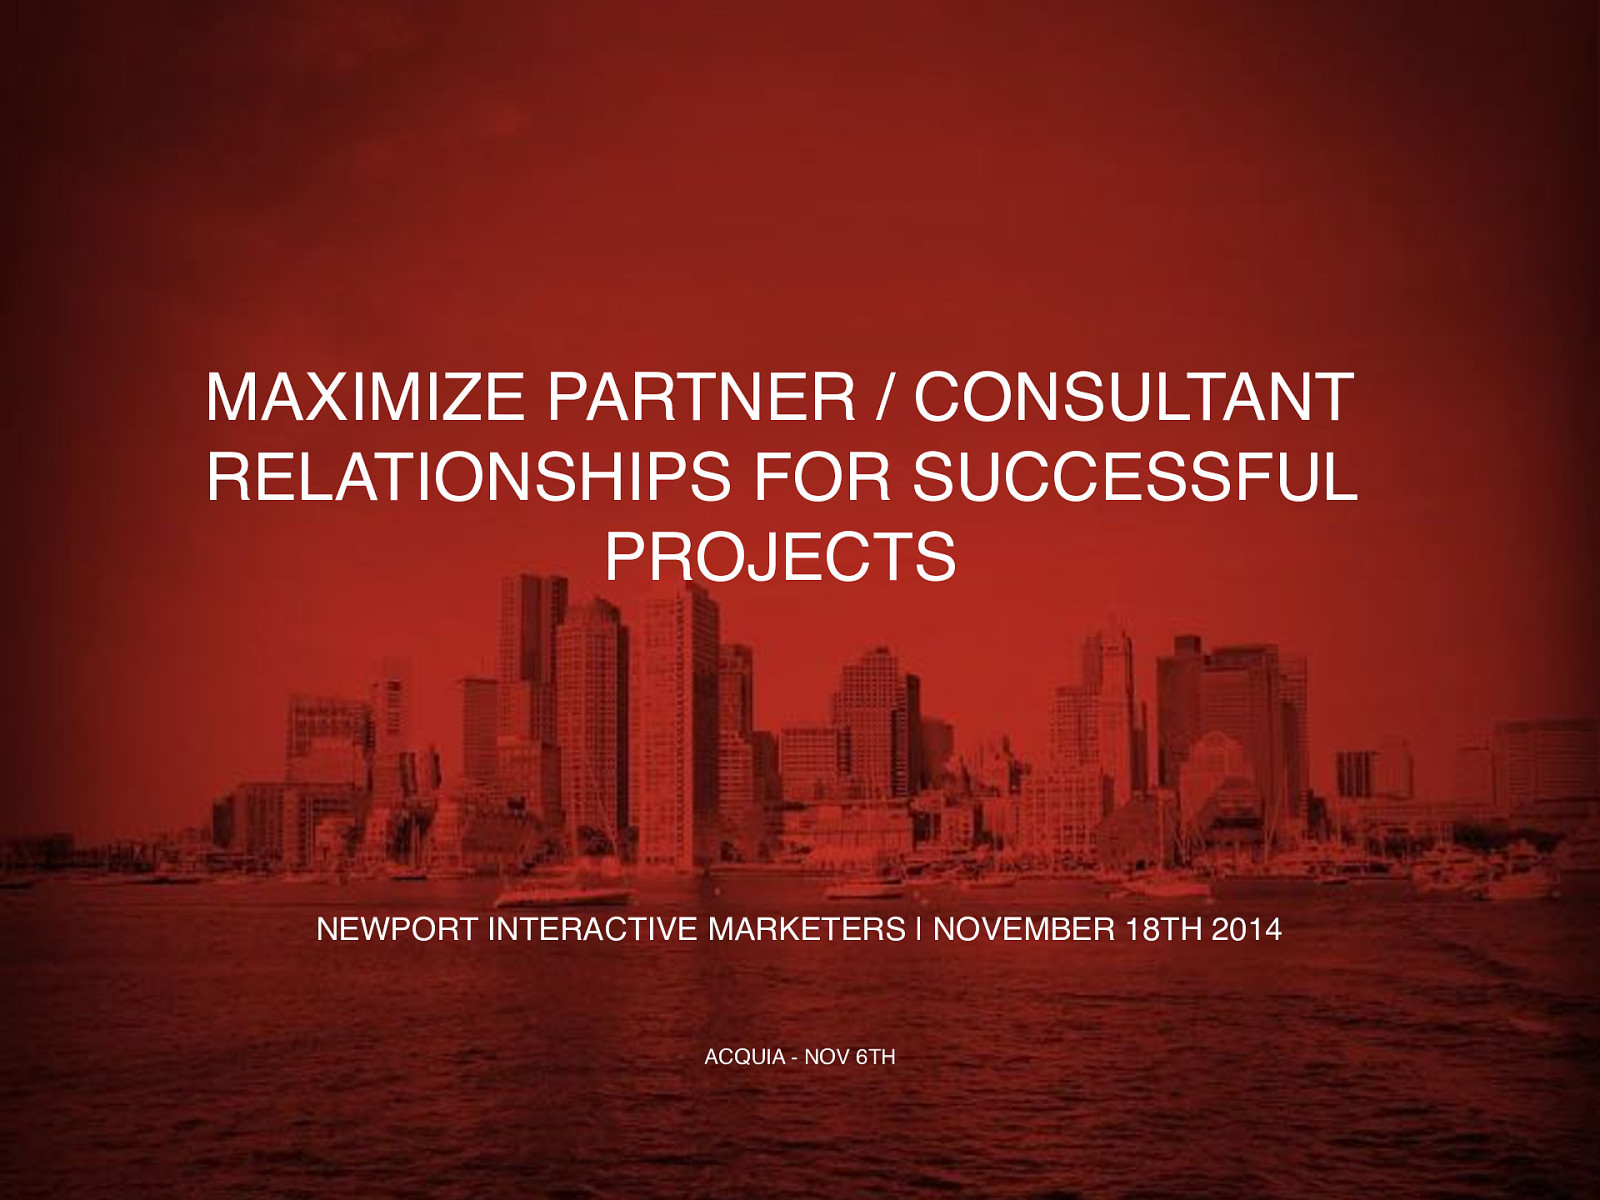 Maximize Partner / Consultant Relationships for Successful Projects